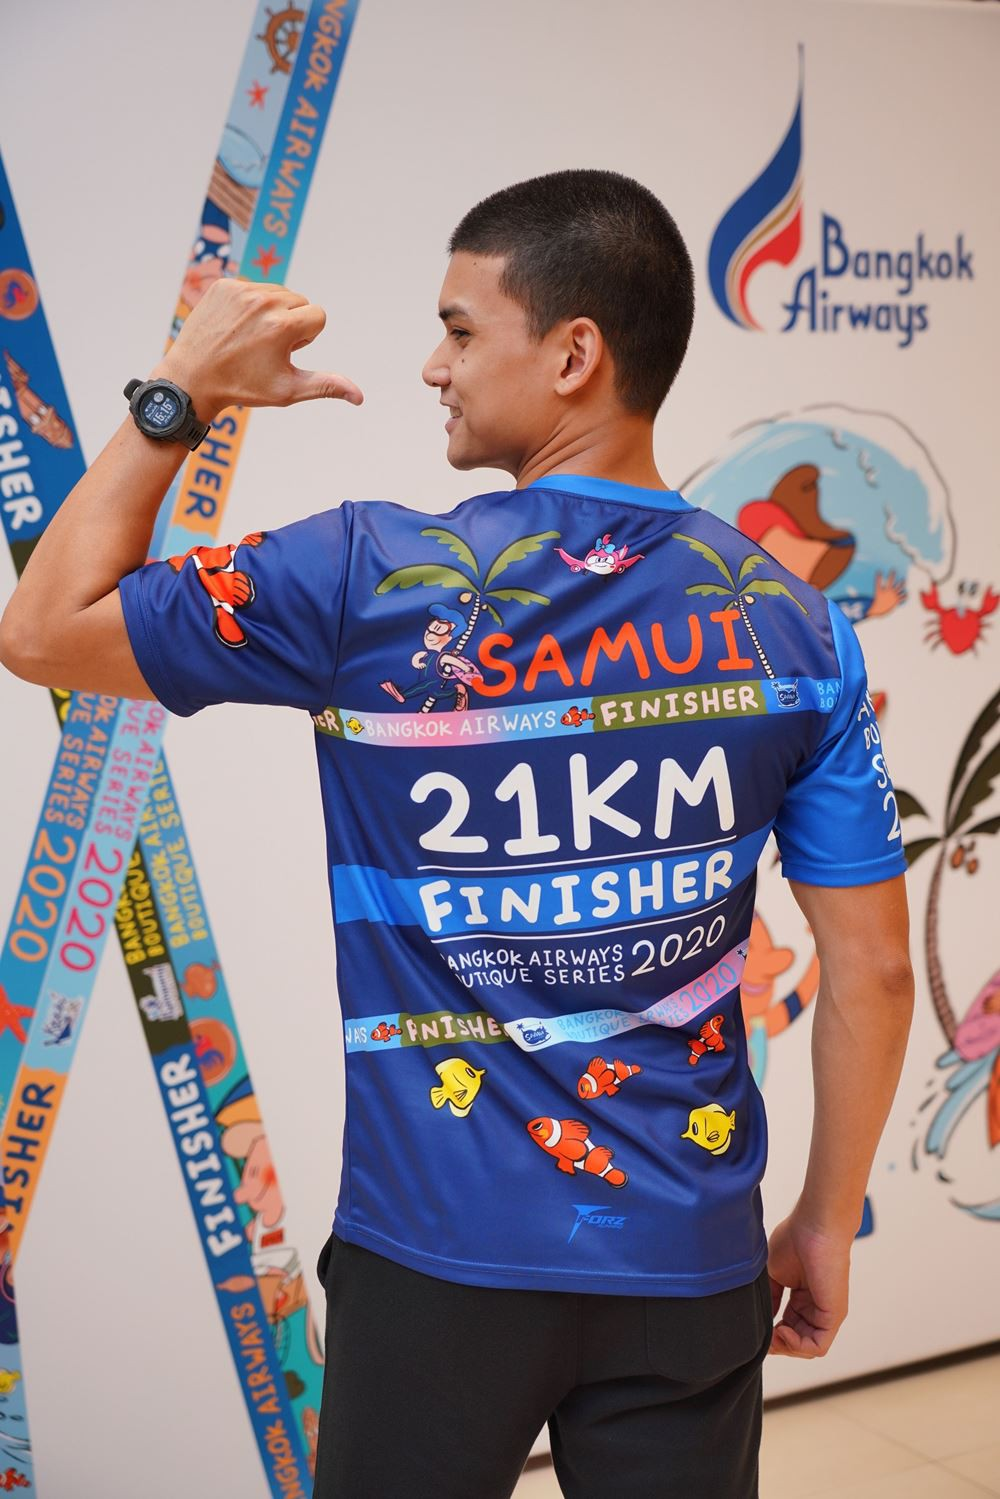 """11 Bangkok Airways launches """"Bangkok Airways Boutique Series 2020"""" The 6 running races at 6 boutique"""